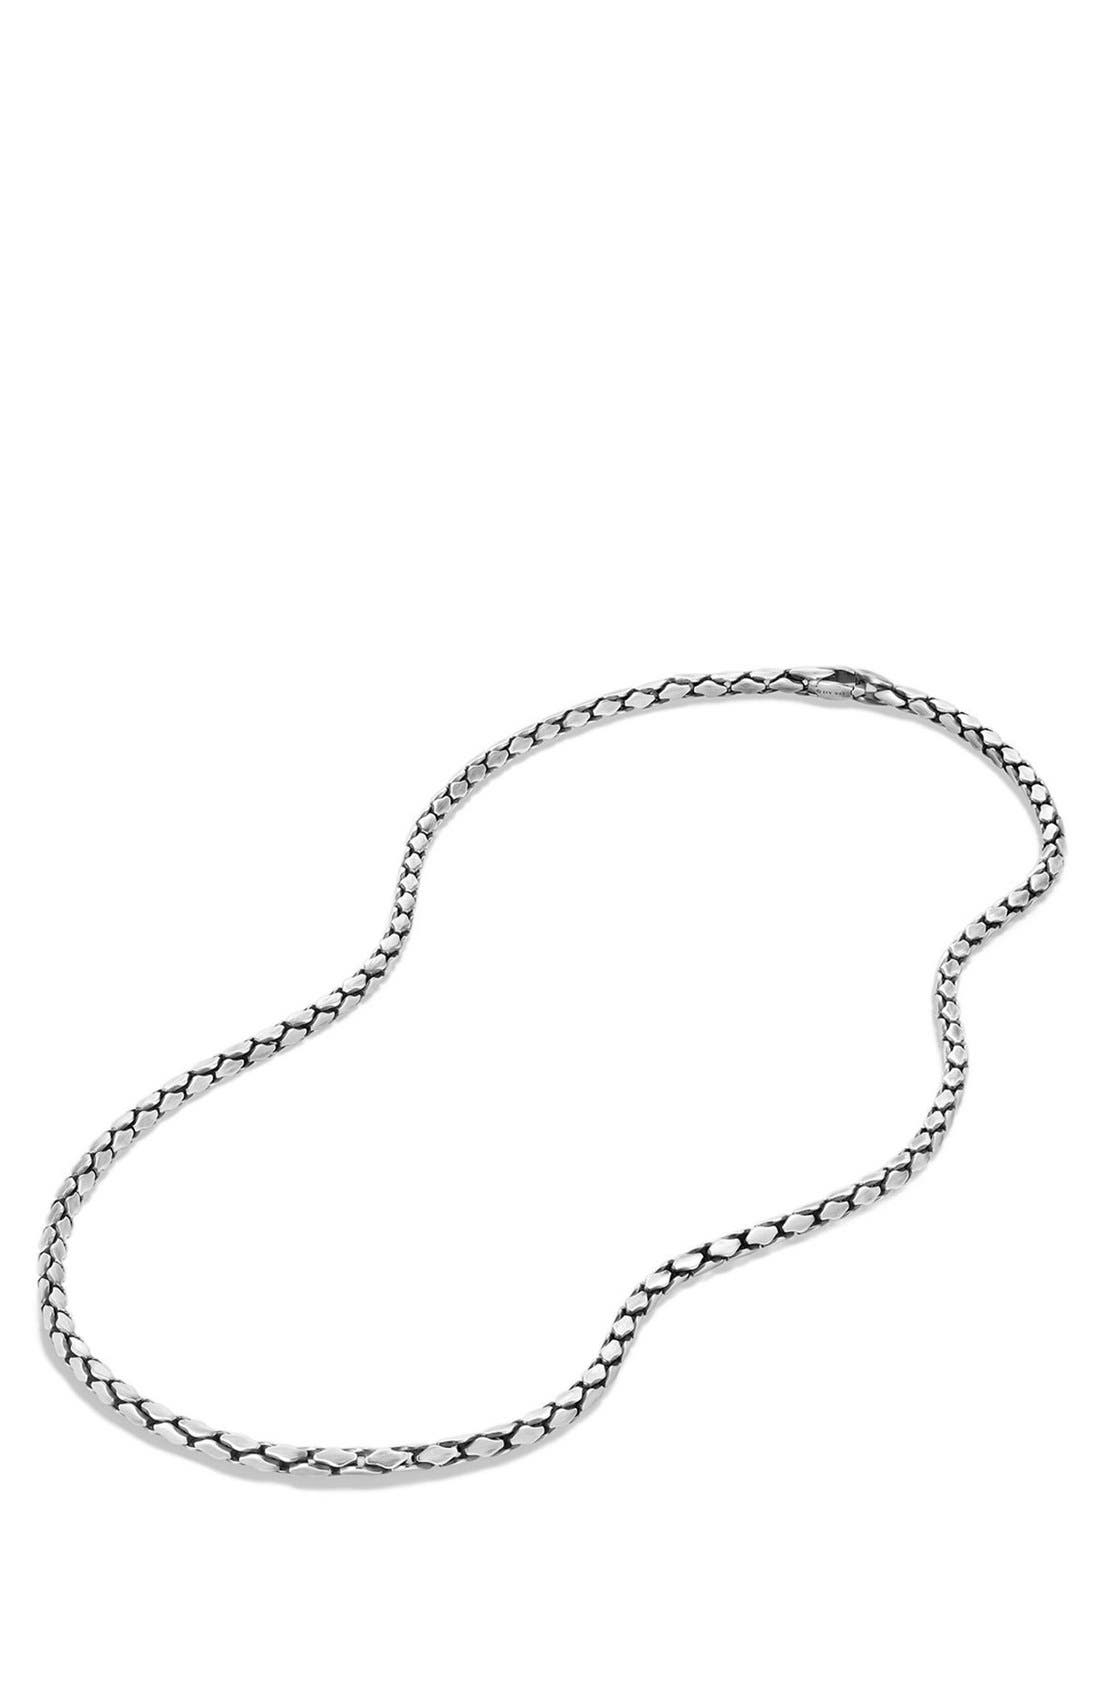 'Chain' Small Fluted Chain Necklace, 3.8mm,                             Alternate thumbnail 3, color,                             SILVER